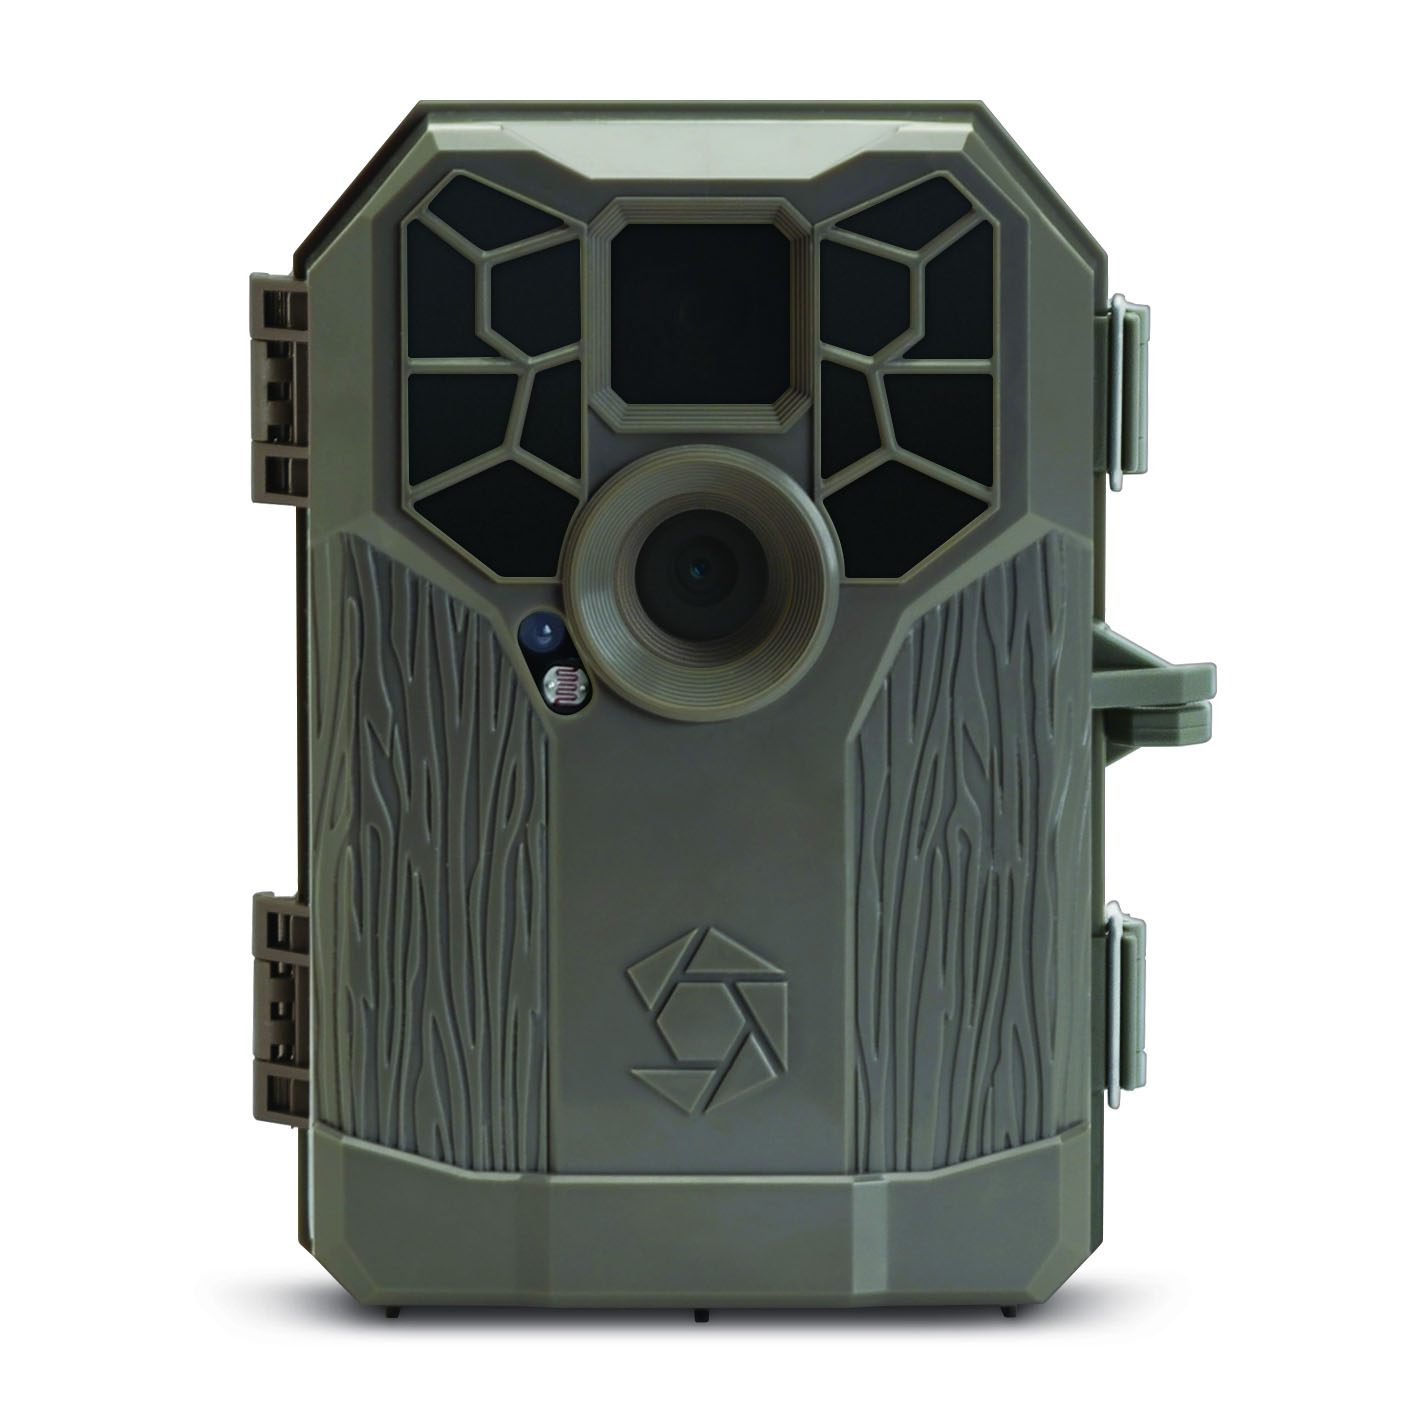 Stealth Cam P12S IR Scouting Trail Hunting Game Camera (Certified Refurbished) by Stealth Cam